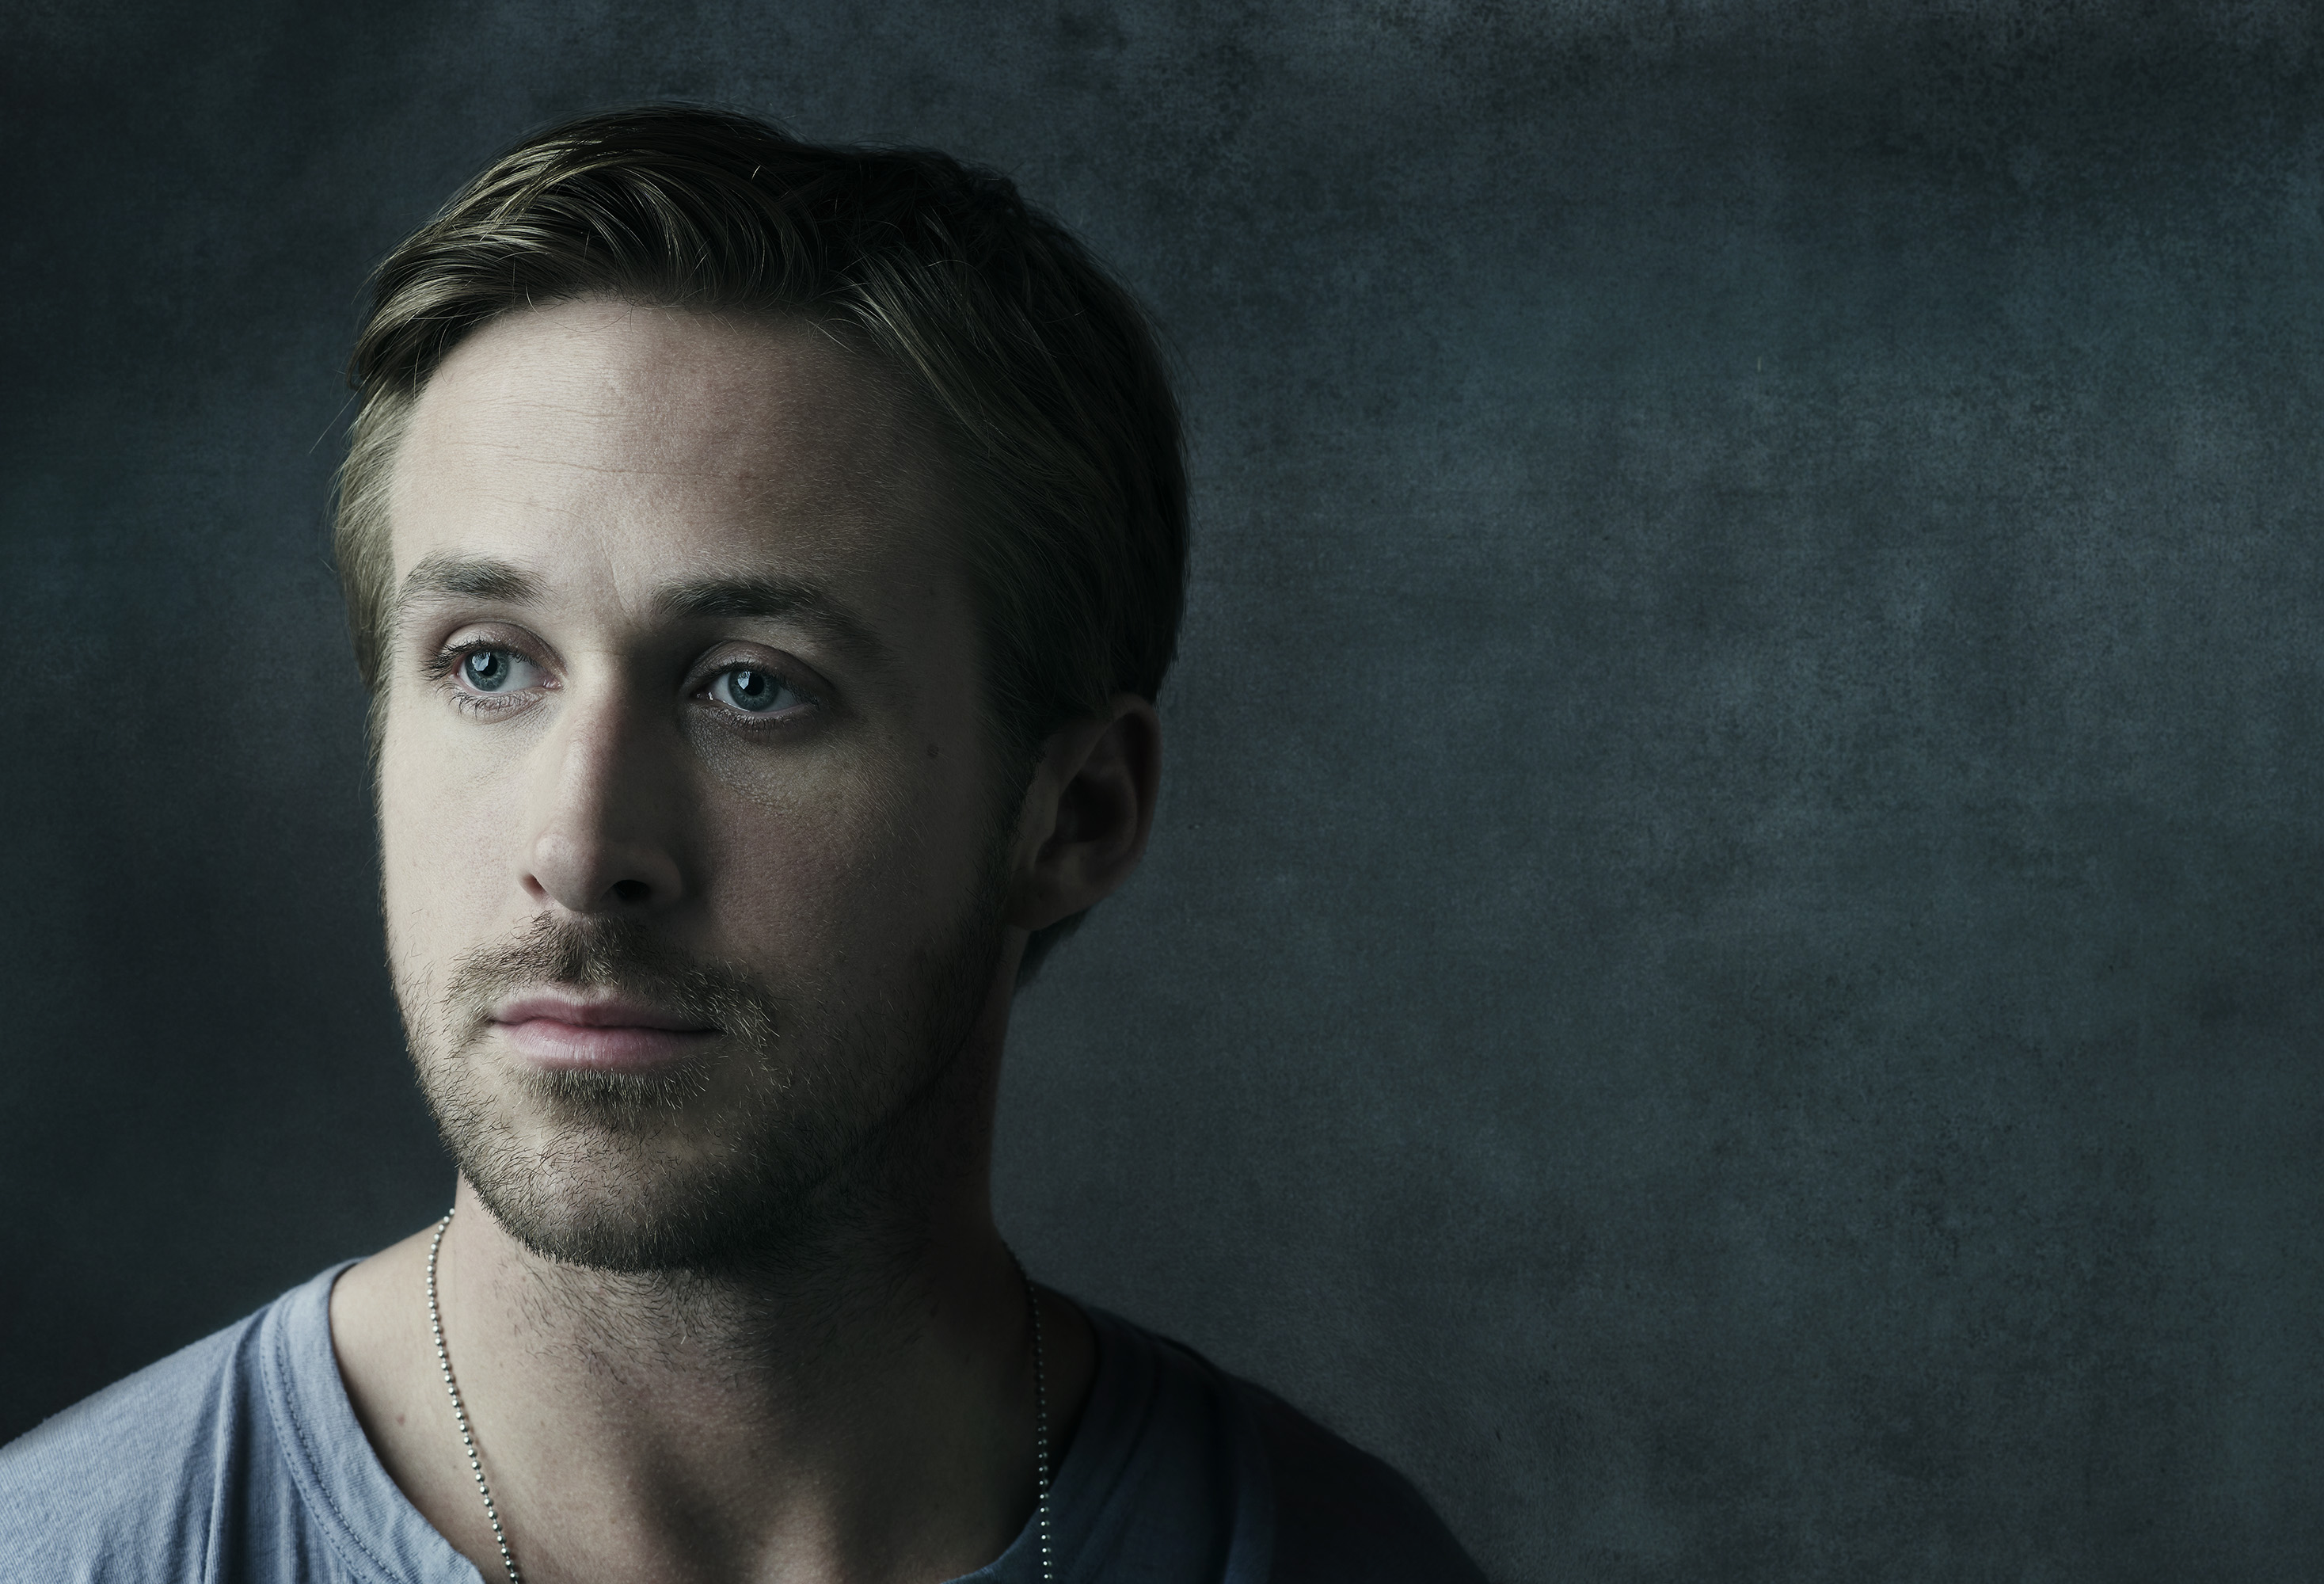 Ryan-Gosling-by-R0bert-Ascroft-07